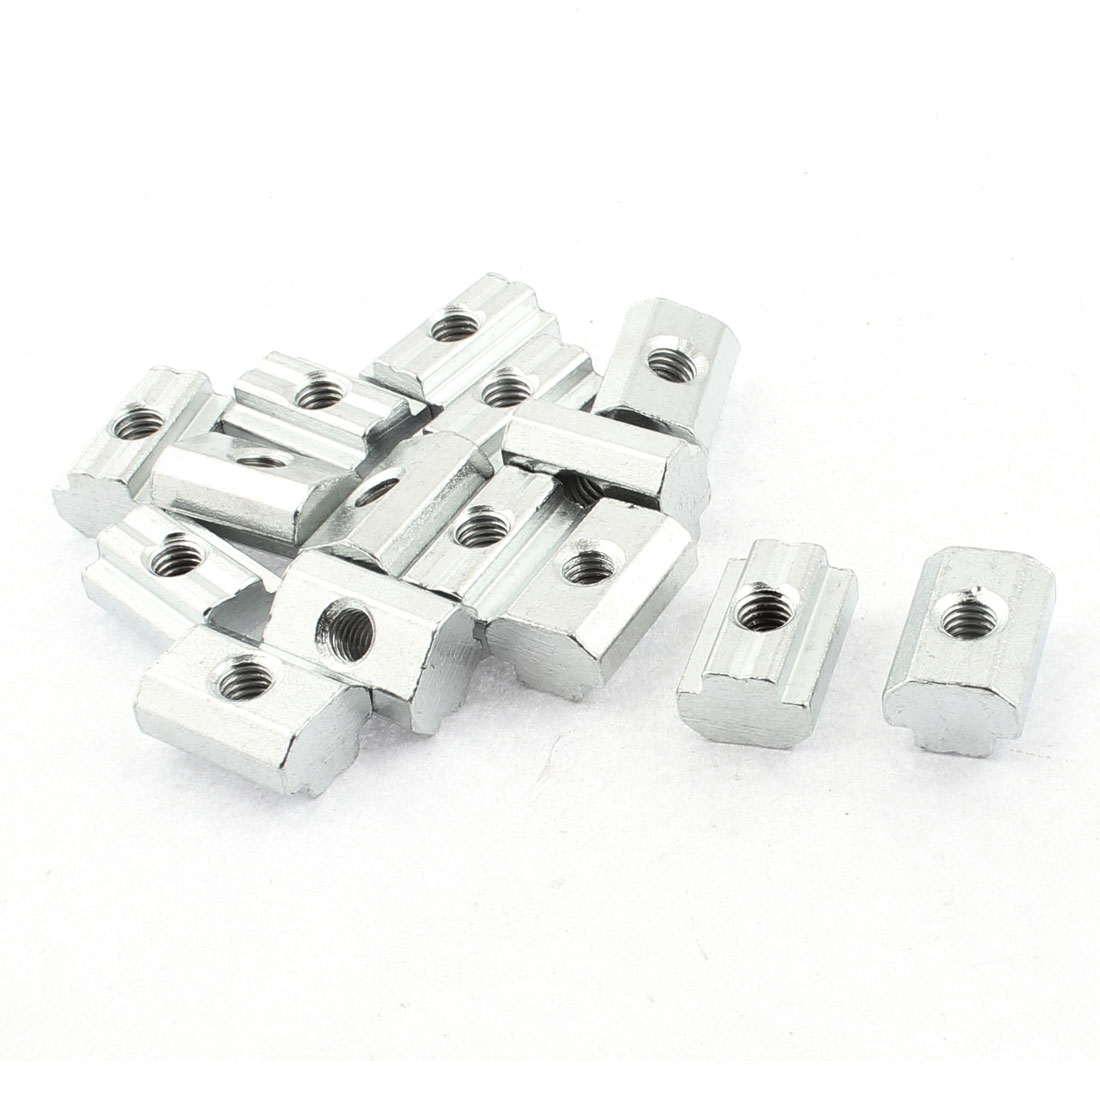 M6 Female Thread Metal T-slot Sliding Block Slot Nut Silver Tone 15pcs